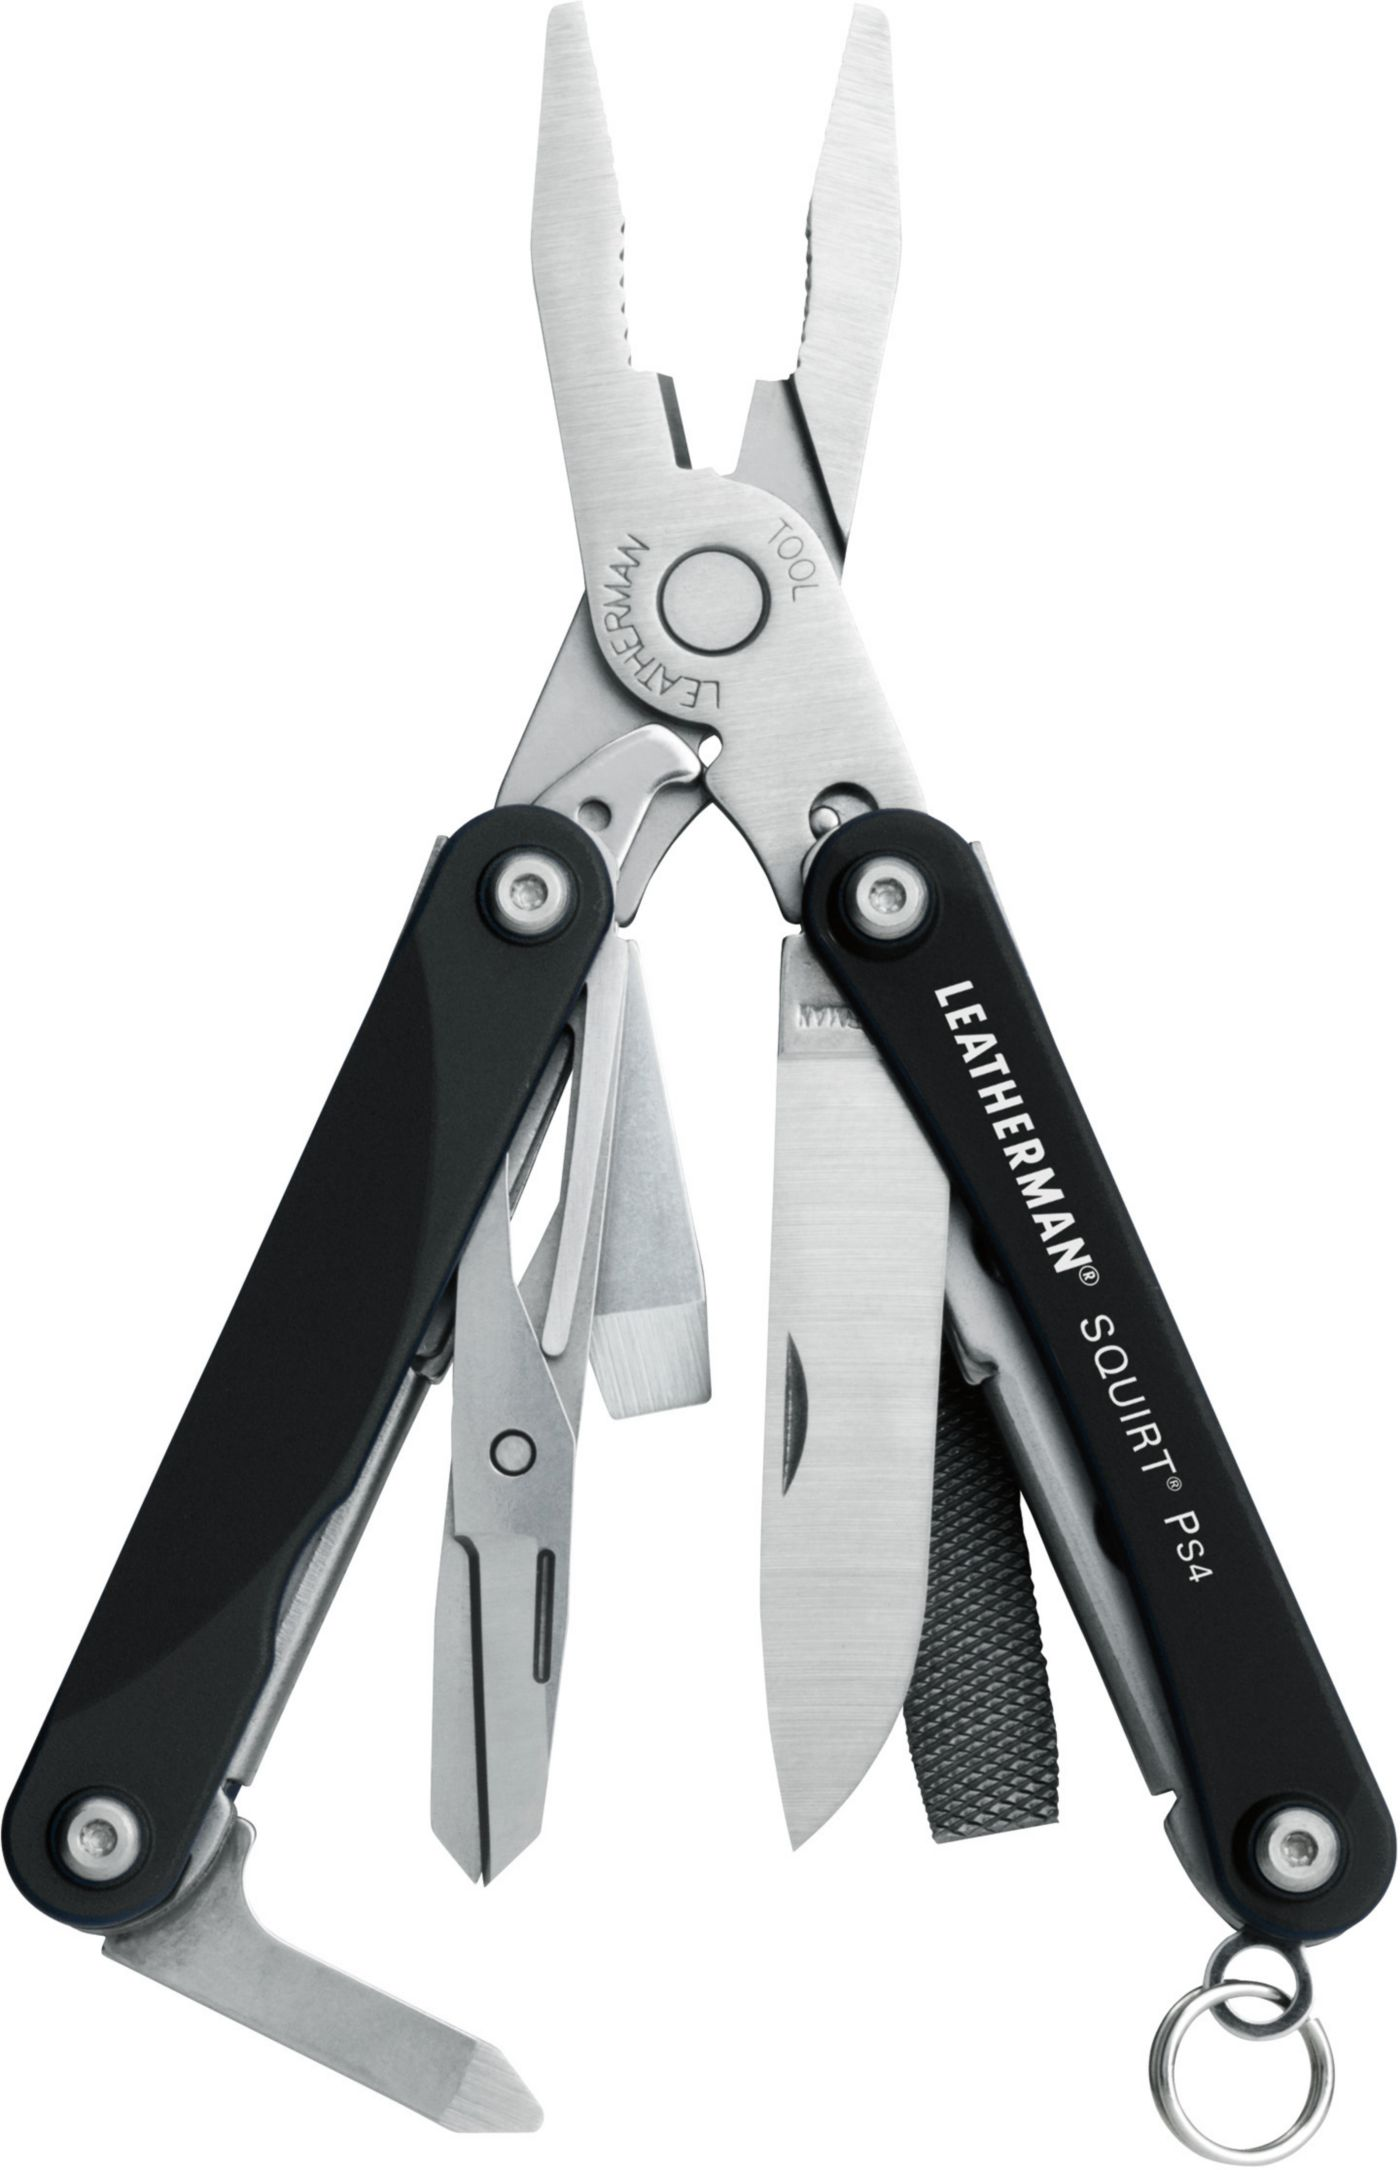 Leatherman Squirt PS4 Multitool